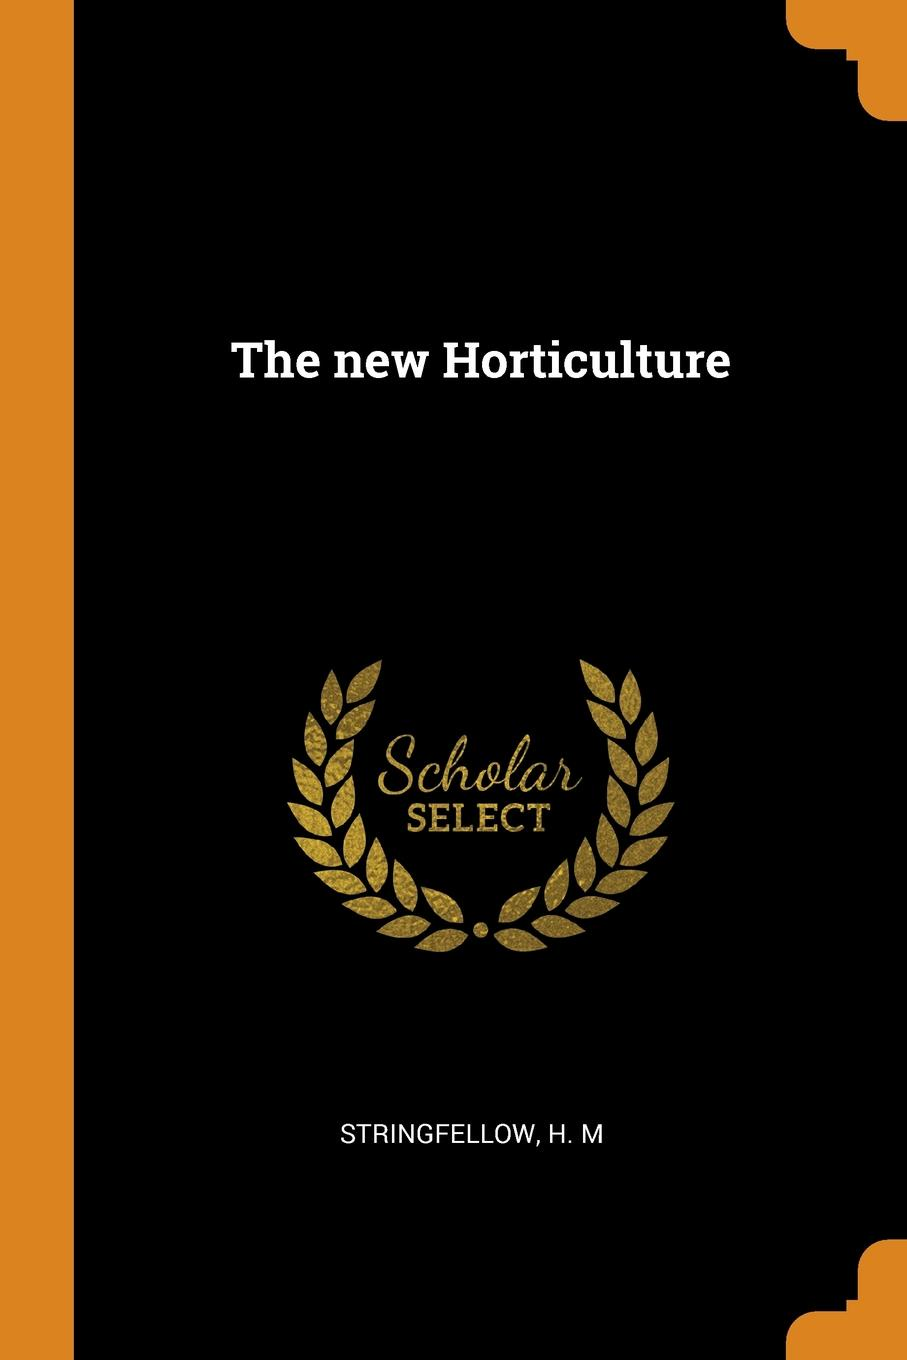 Stringfellow H. M The new Horticulture